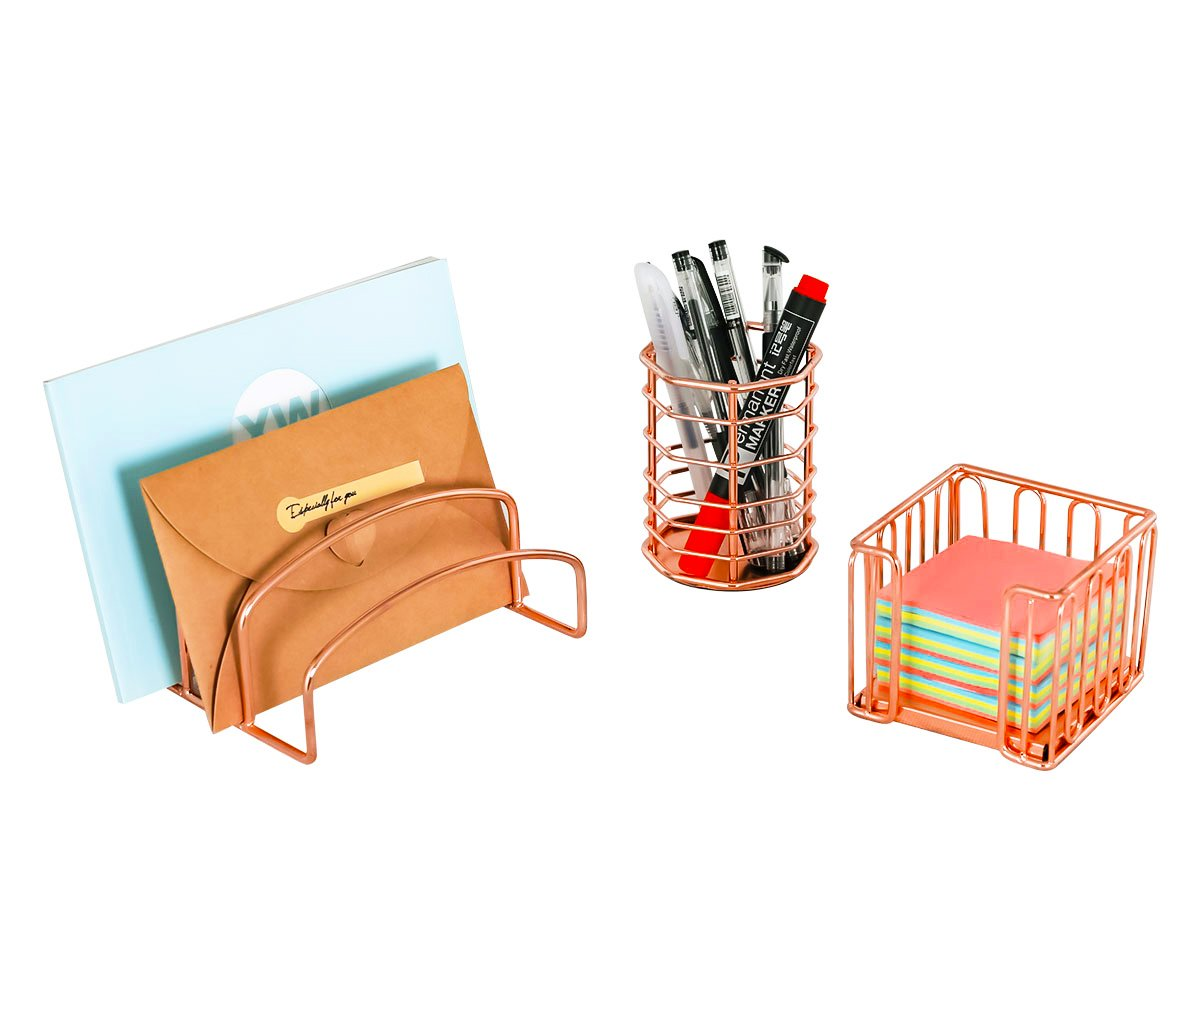 Awesome Amazon.com : PAG Rose Gold Office Supplies 5 In 1 Metal Desk Organizer Set    Hanging File Organizer, File Tray, Letter Sorter, Pencil Holder And Stick  Note ...